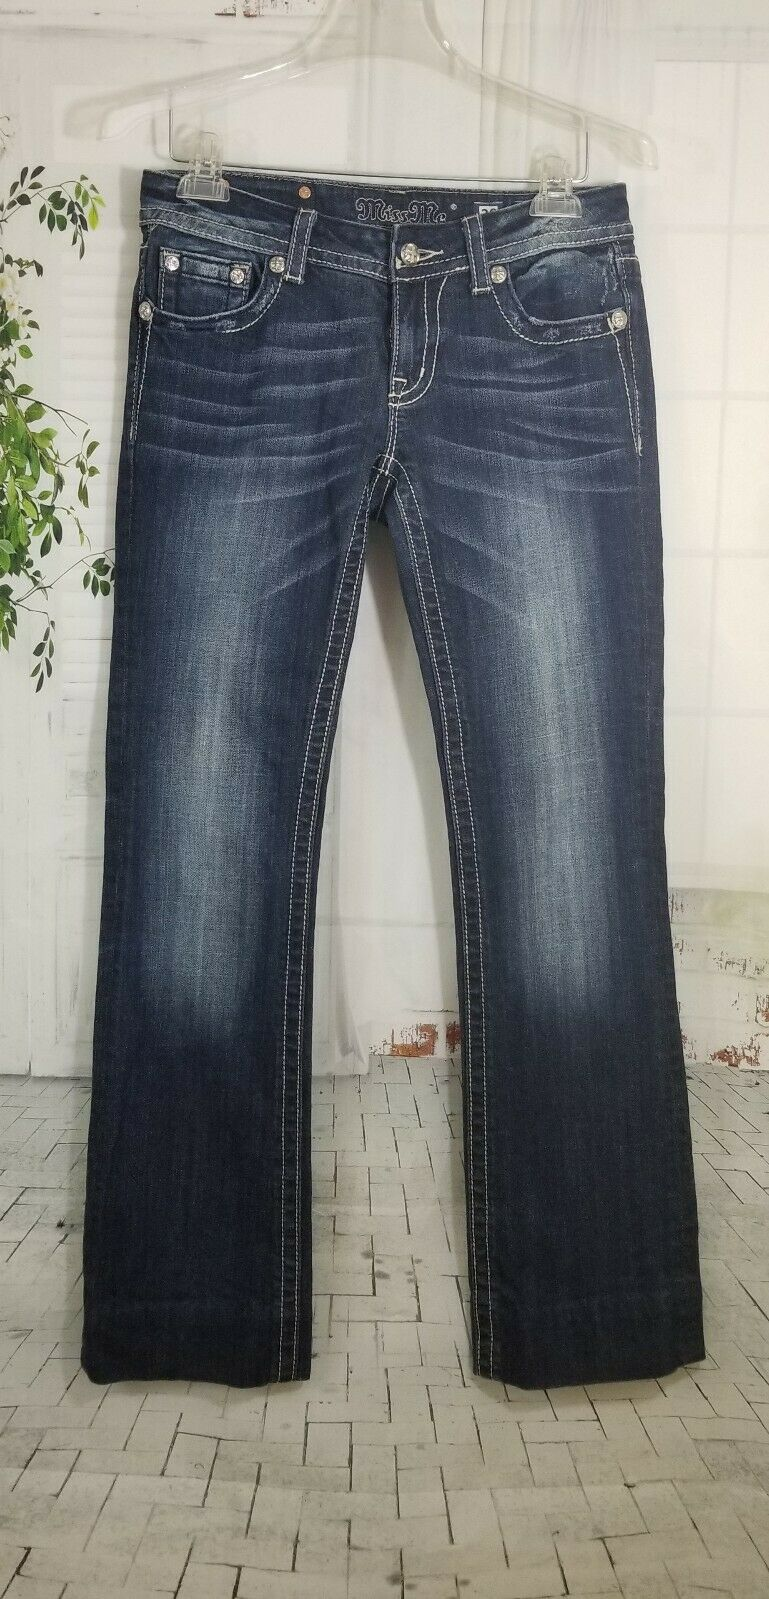 Miss Me embellished jeans women's size 30 bluee distressed bootcut low rise